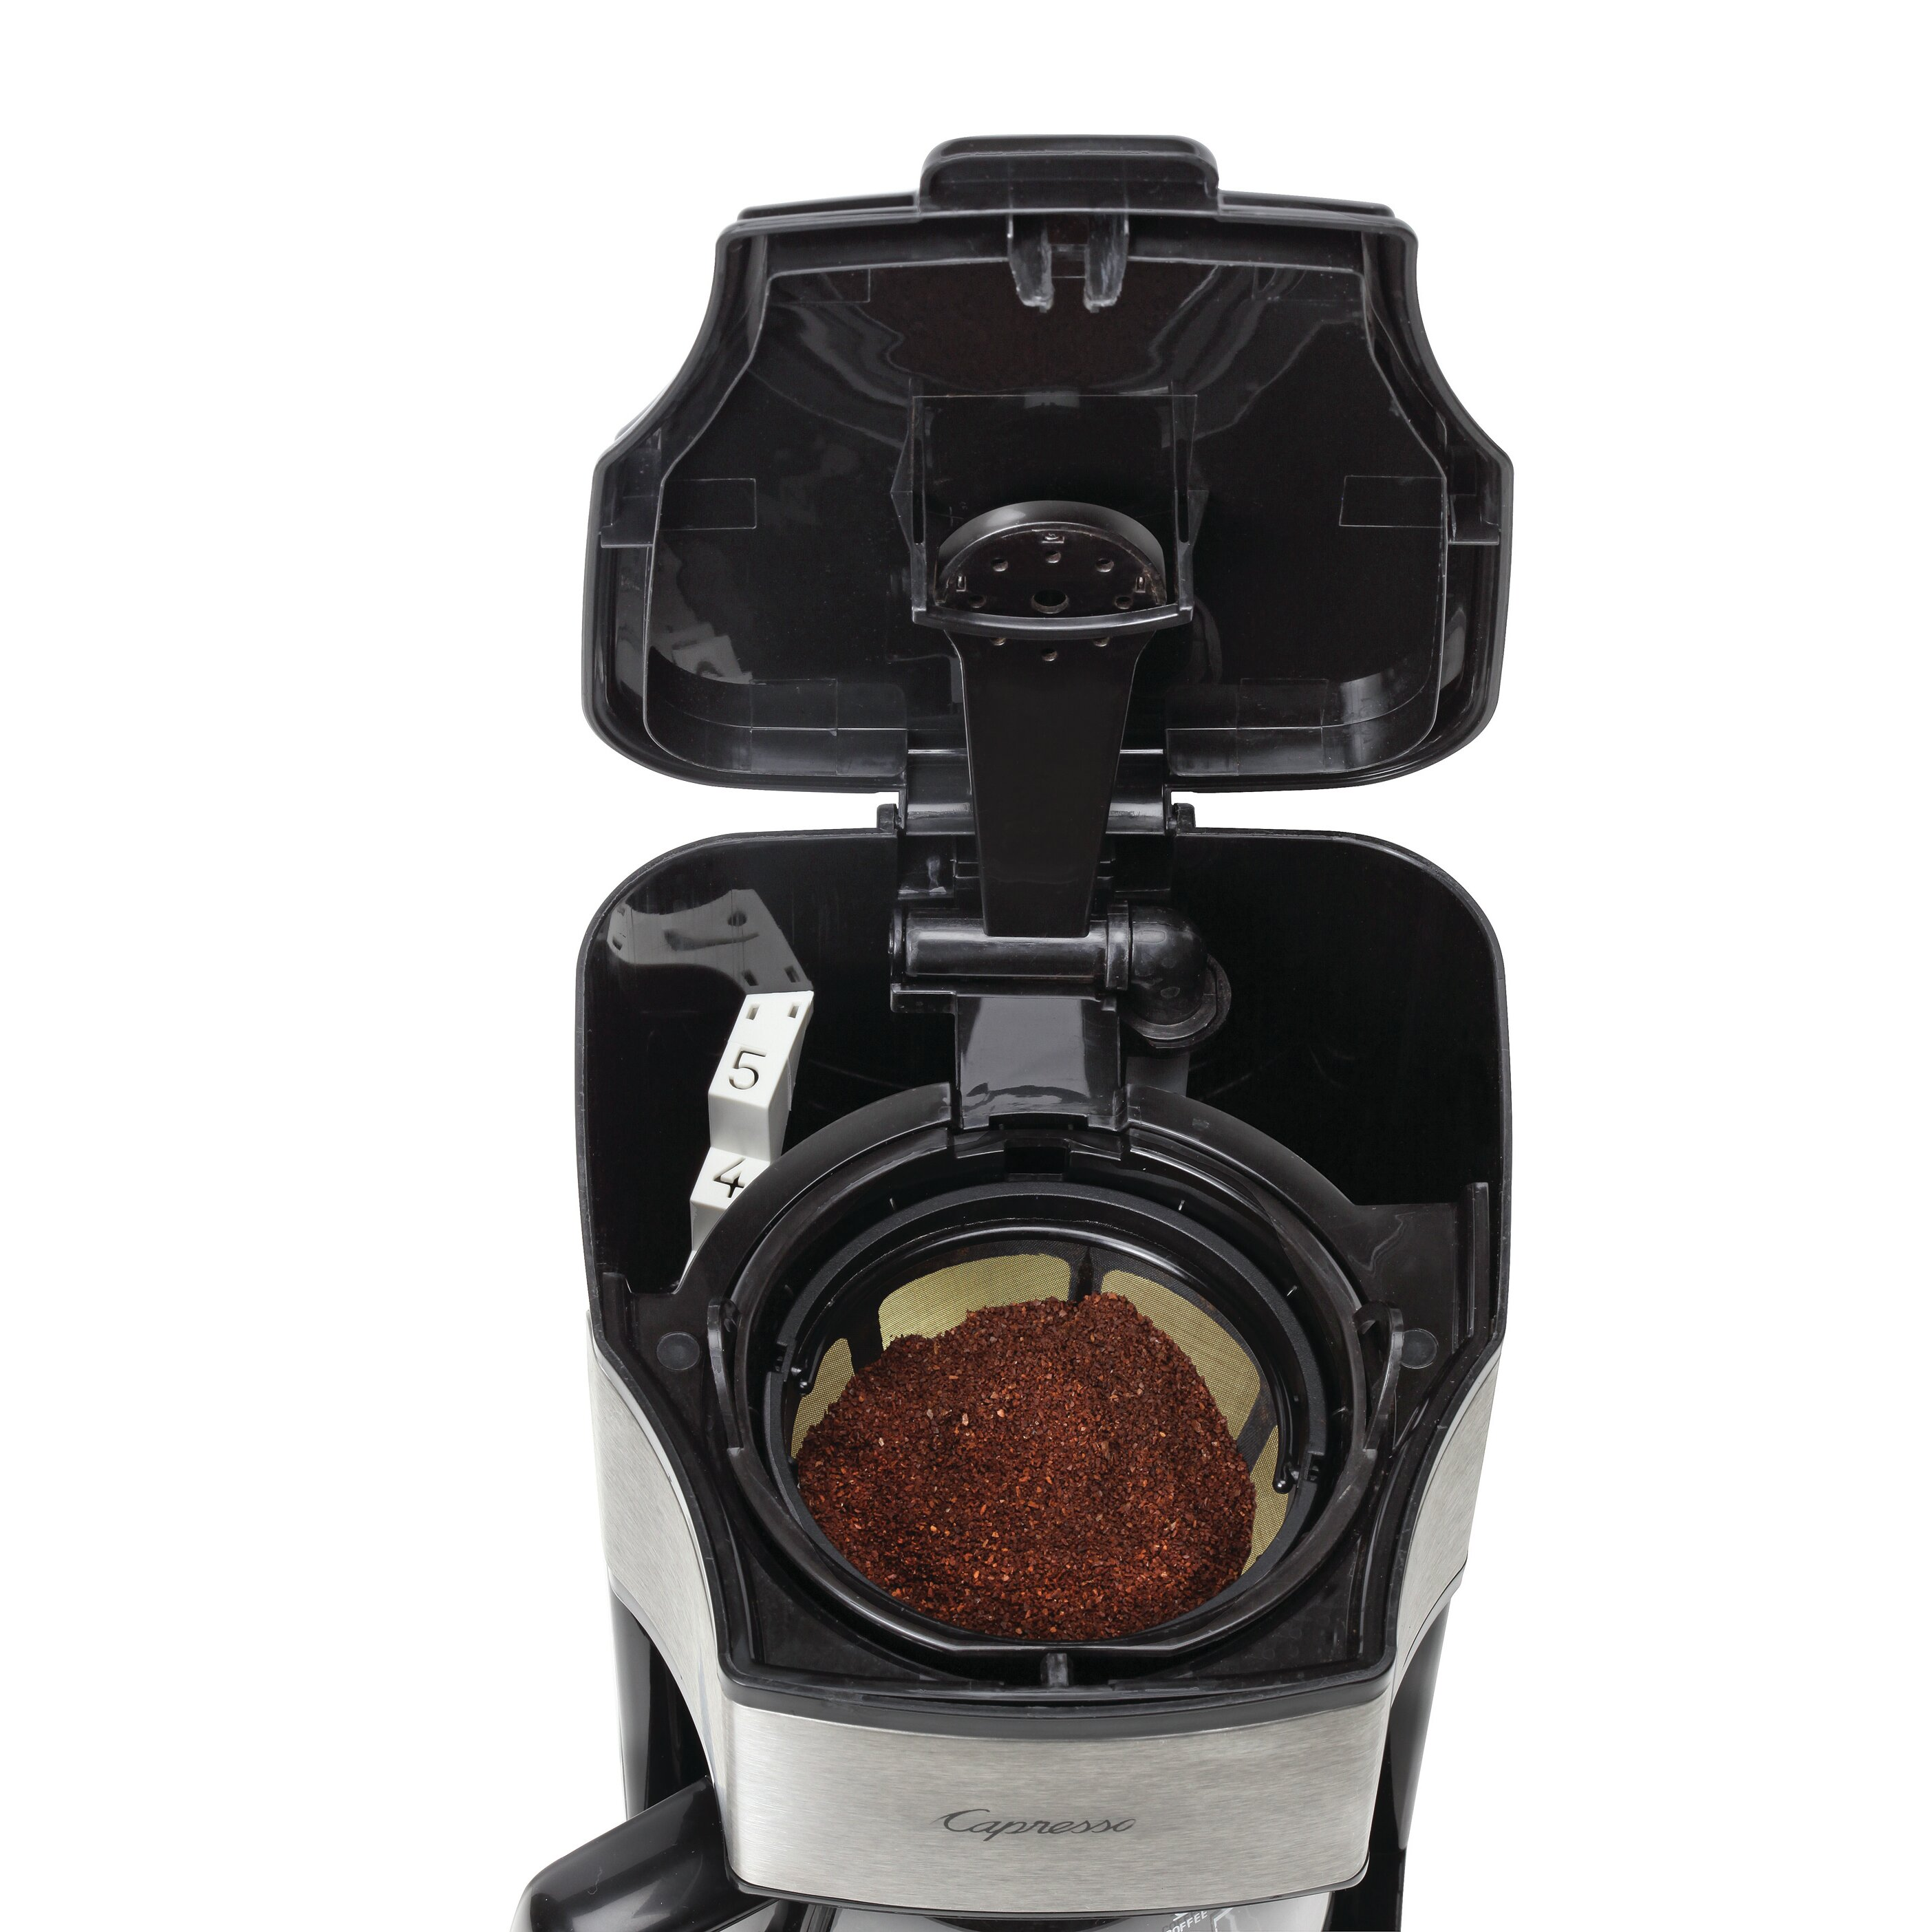 Capresso 5-Cup Mini Drip Coffee Maker & Reviews Wayfair